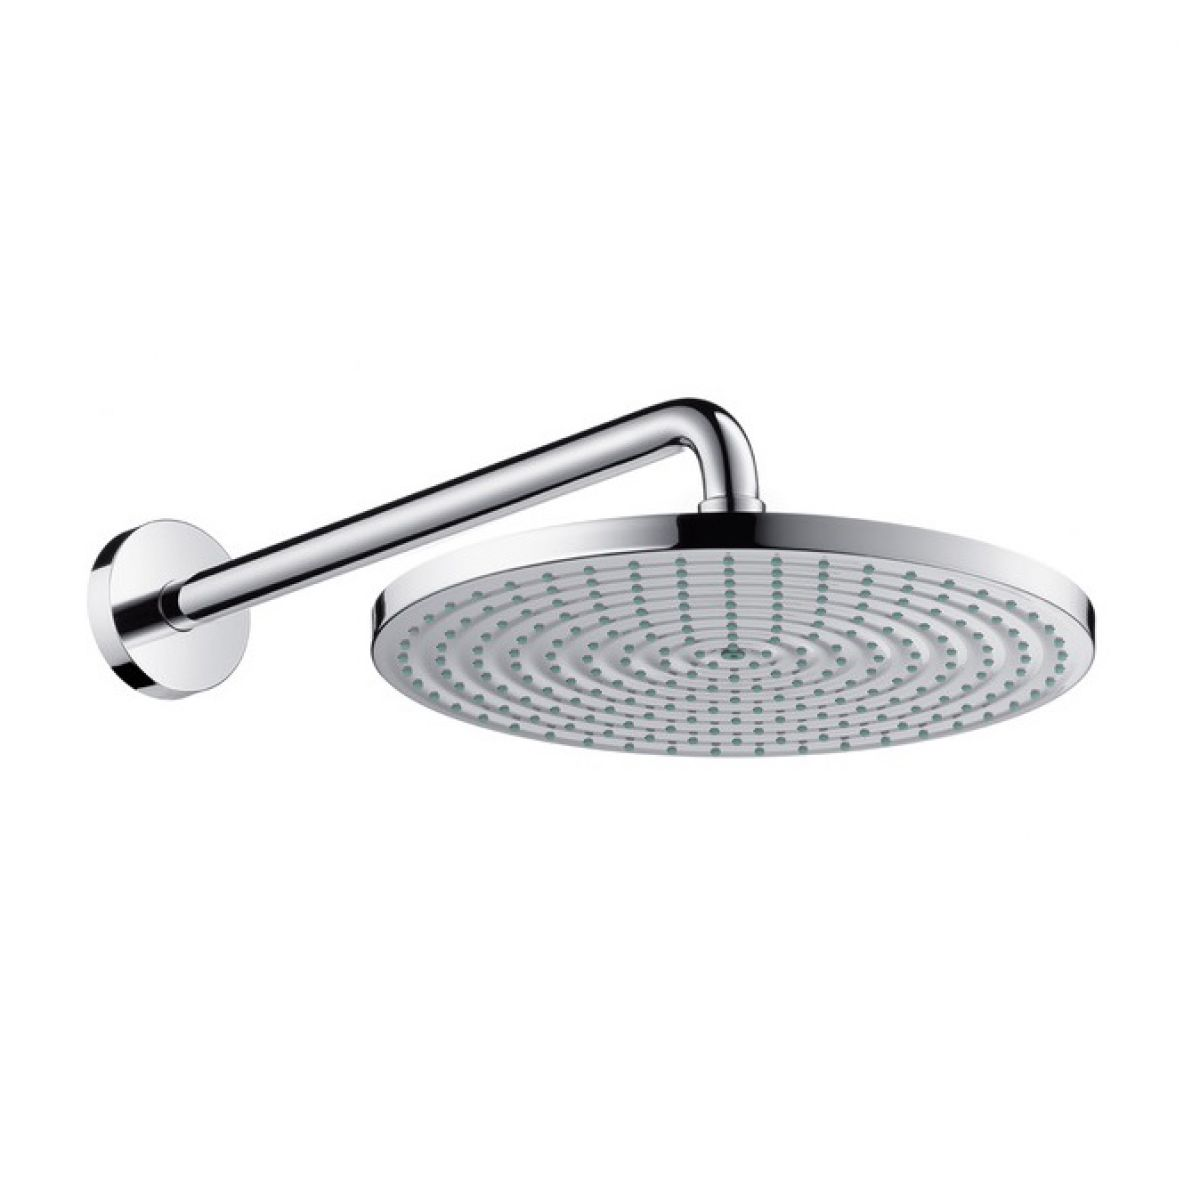 Hansgrohe Raindance S Overhead Shower Wall Mounted